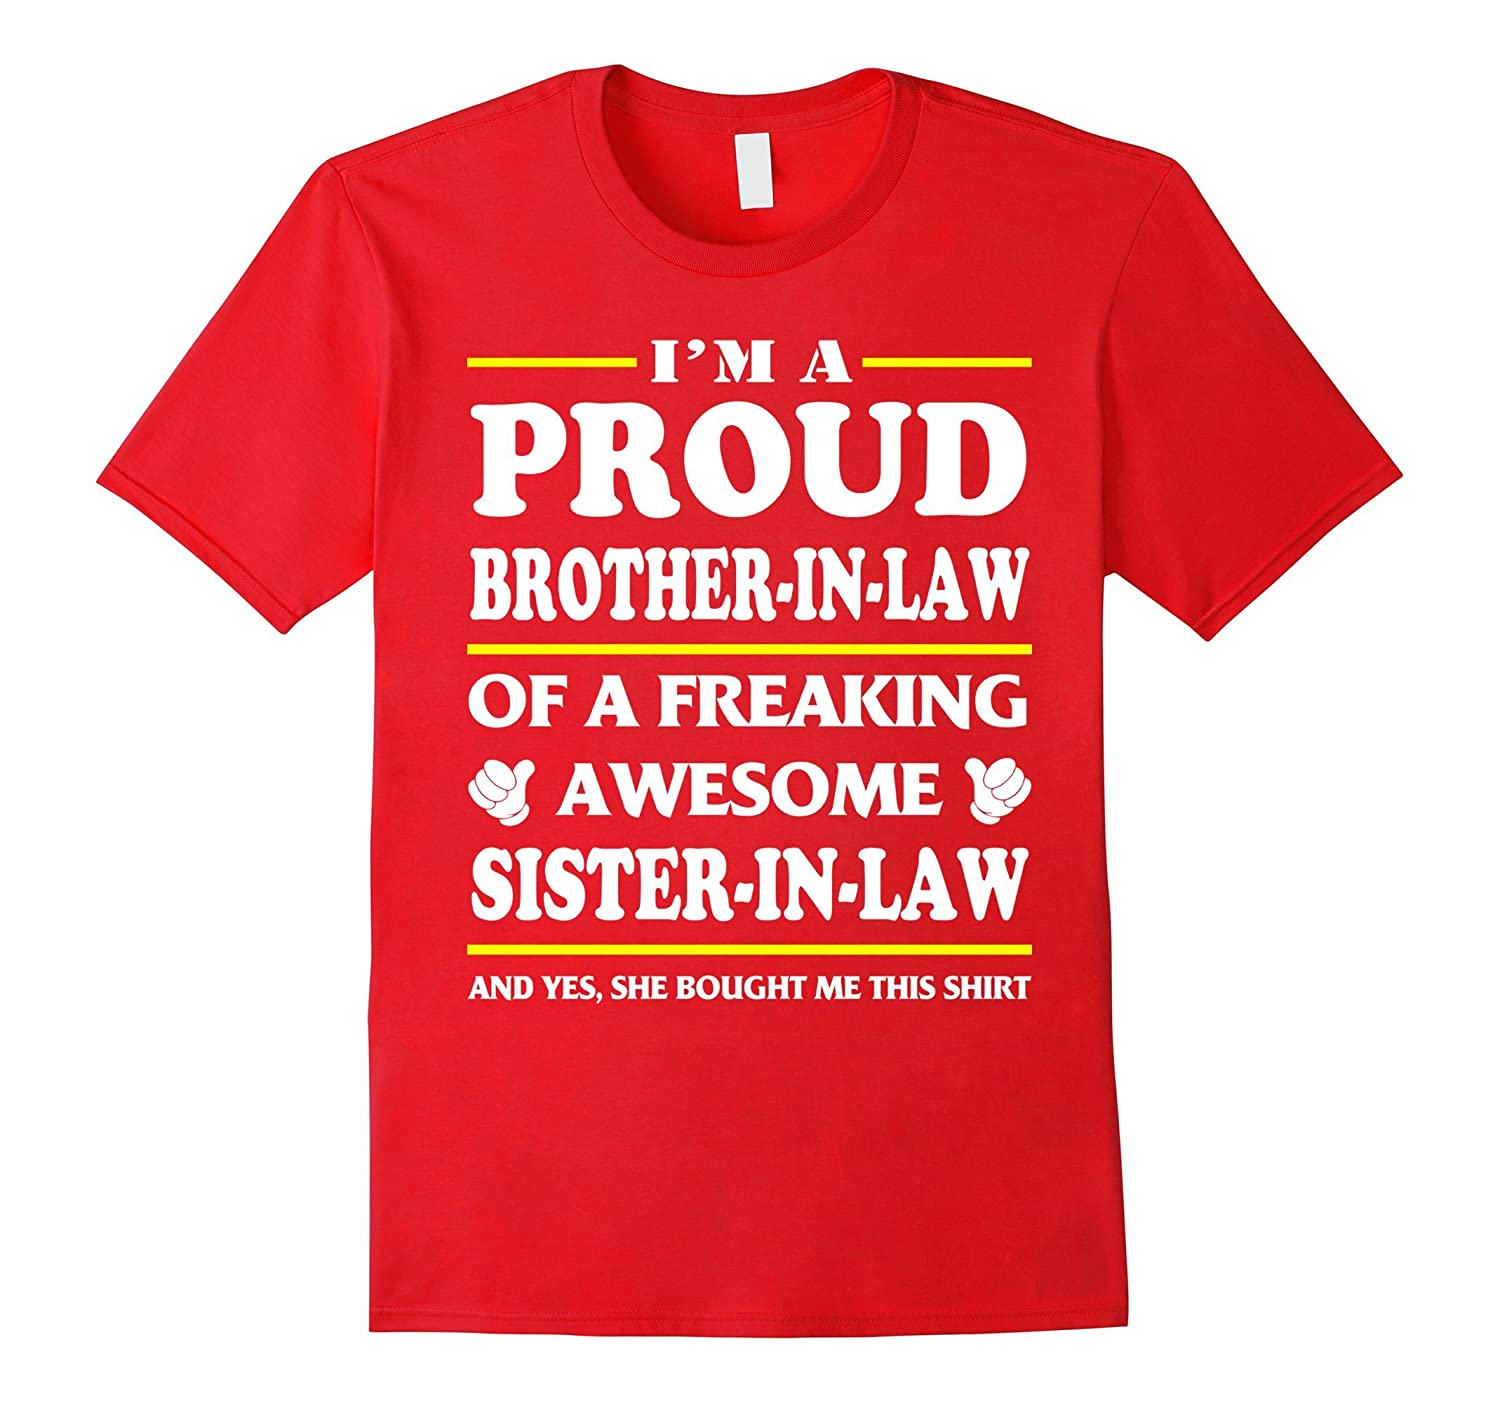 35f0cc7b Proud Brother In Law Of A Awesome Sister In Law T-Shirt - Goatstee